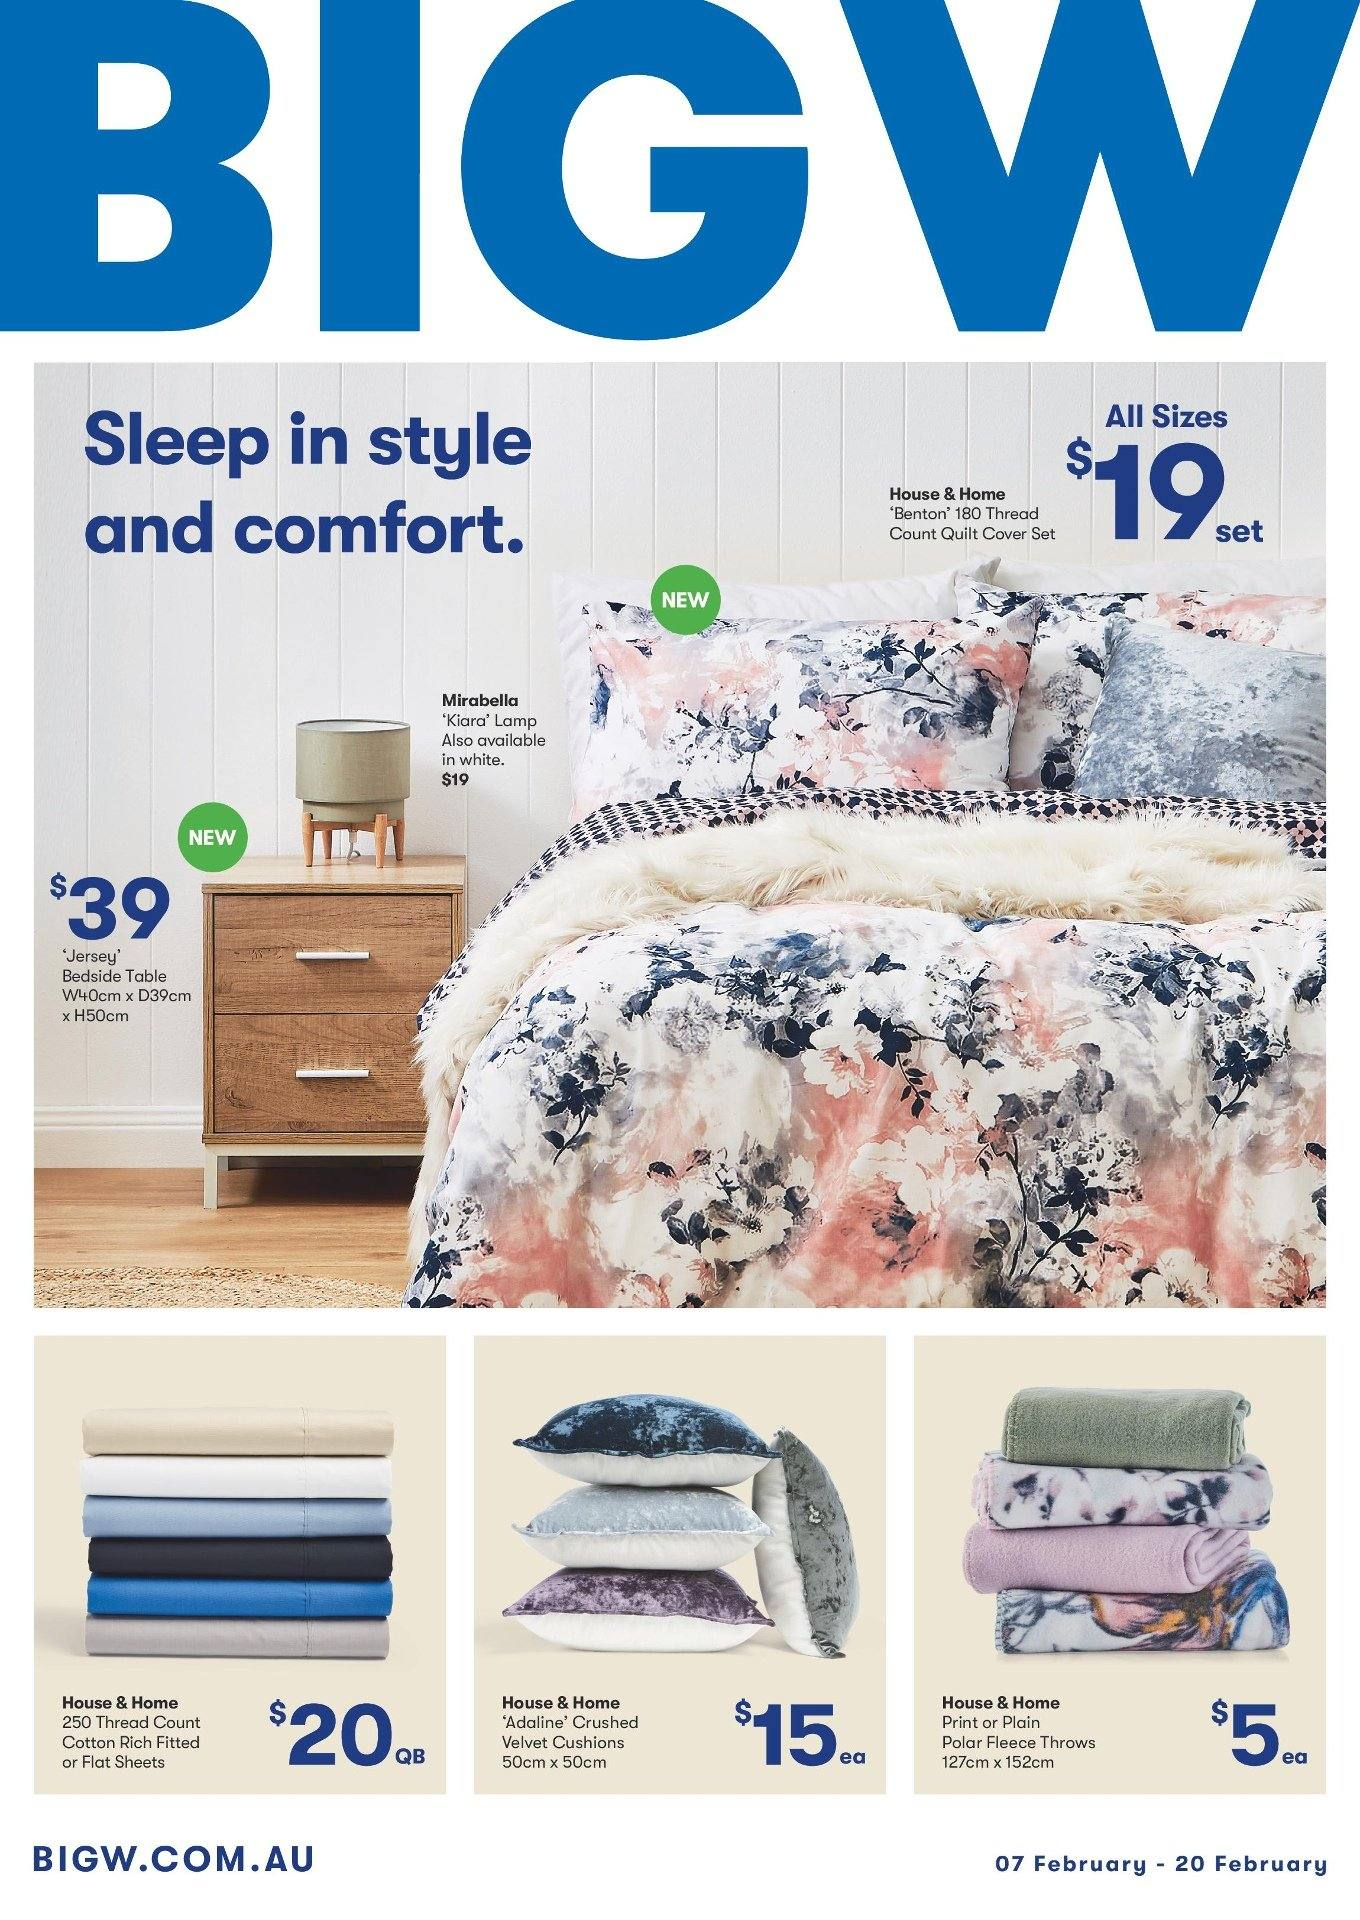 BIG W Catalogue - 7.2.2019 - 20.2.2019 - Sales products - bedside table, cover, d3, lamp, table, throw, quilt. Page 1.